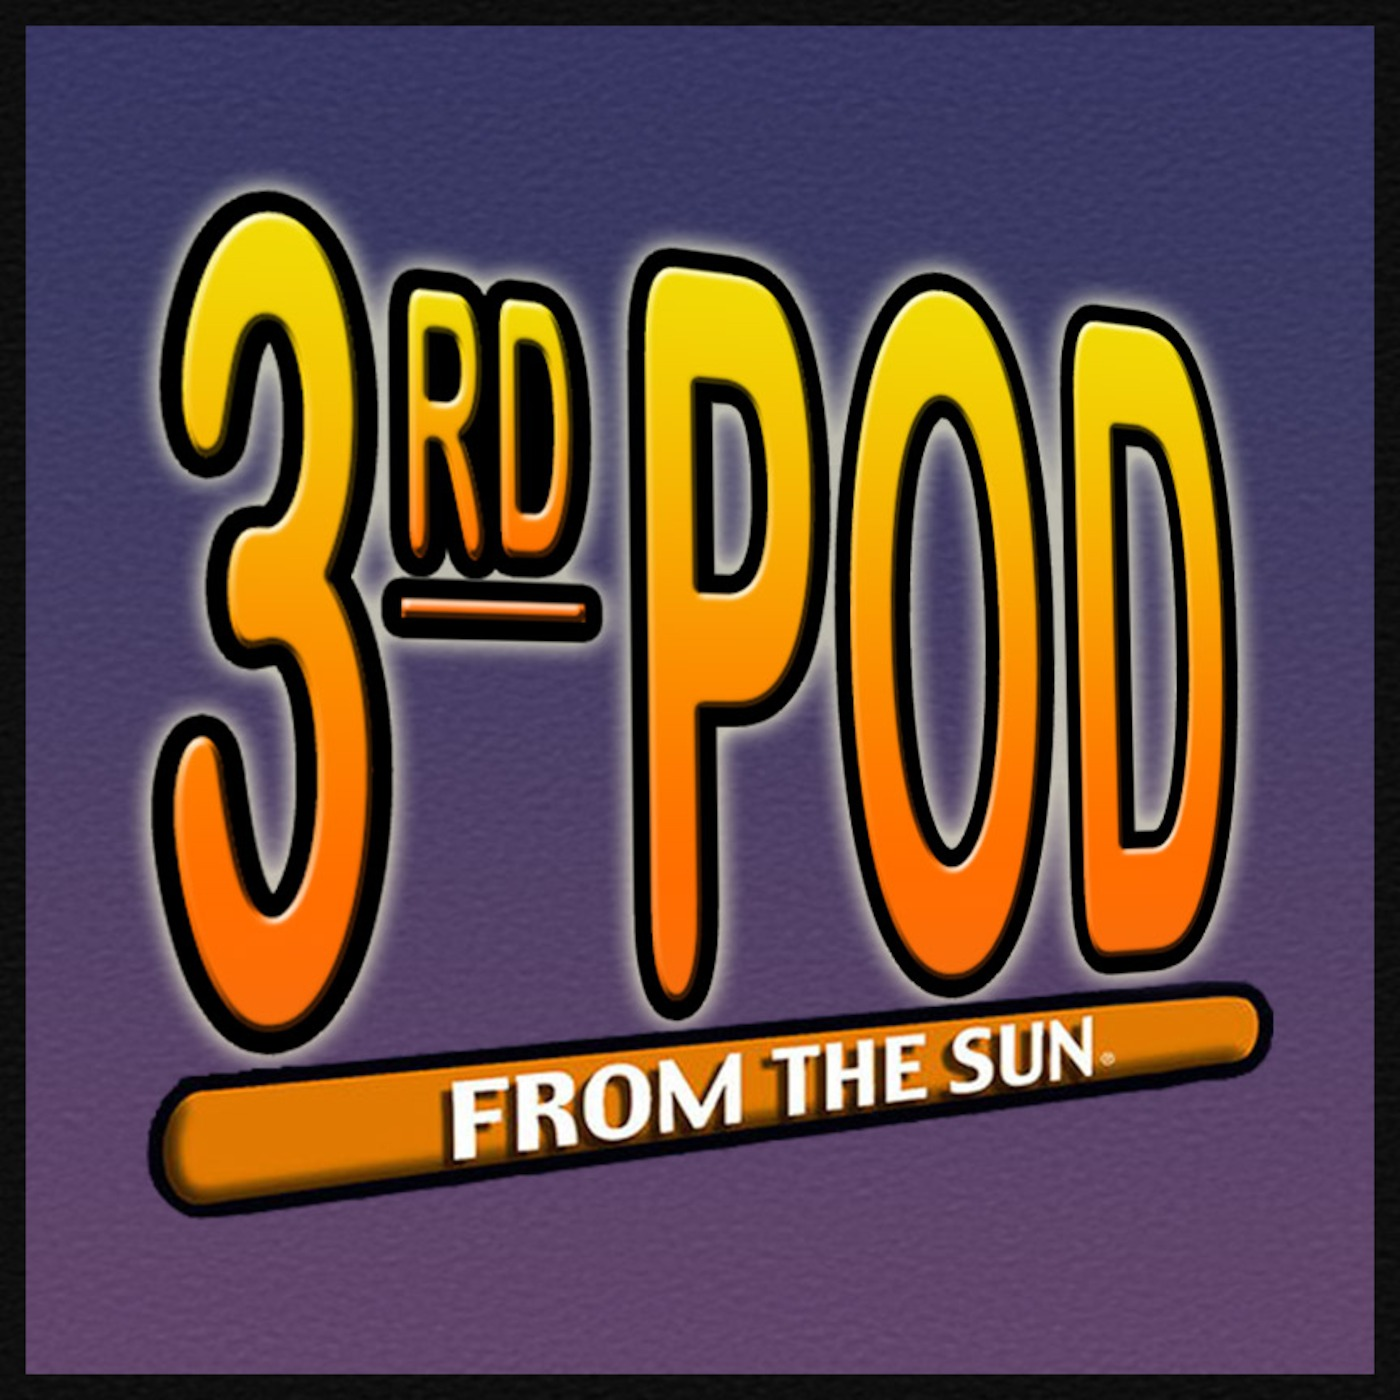 3rd Pod From The Sun